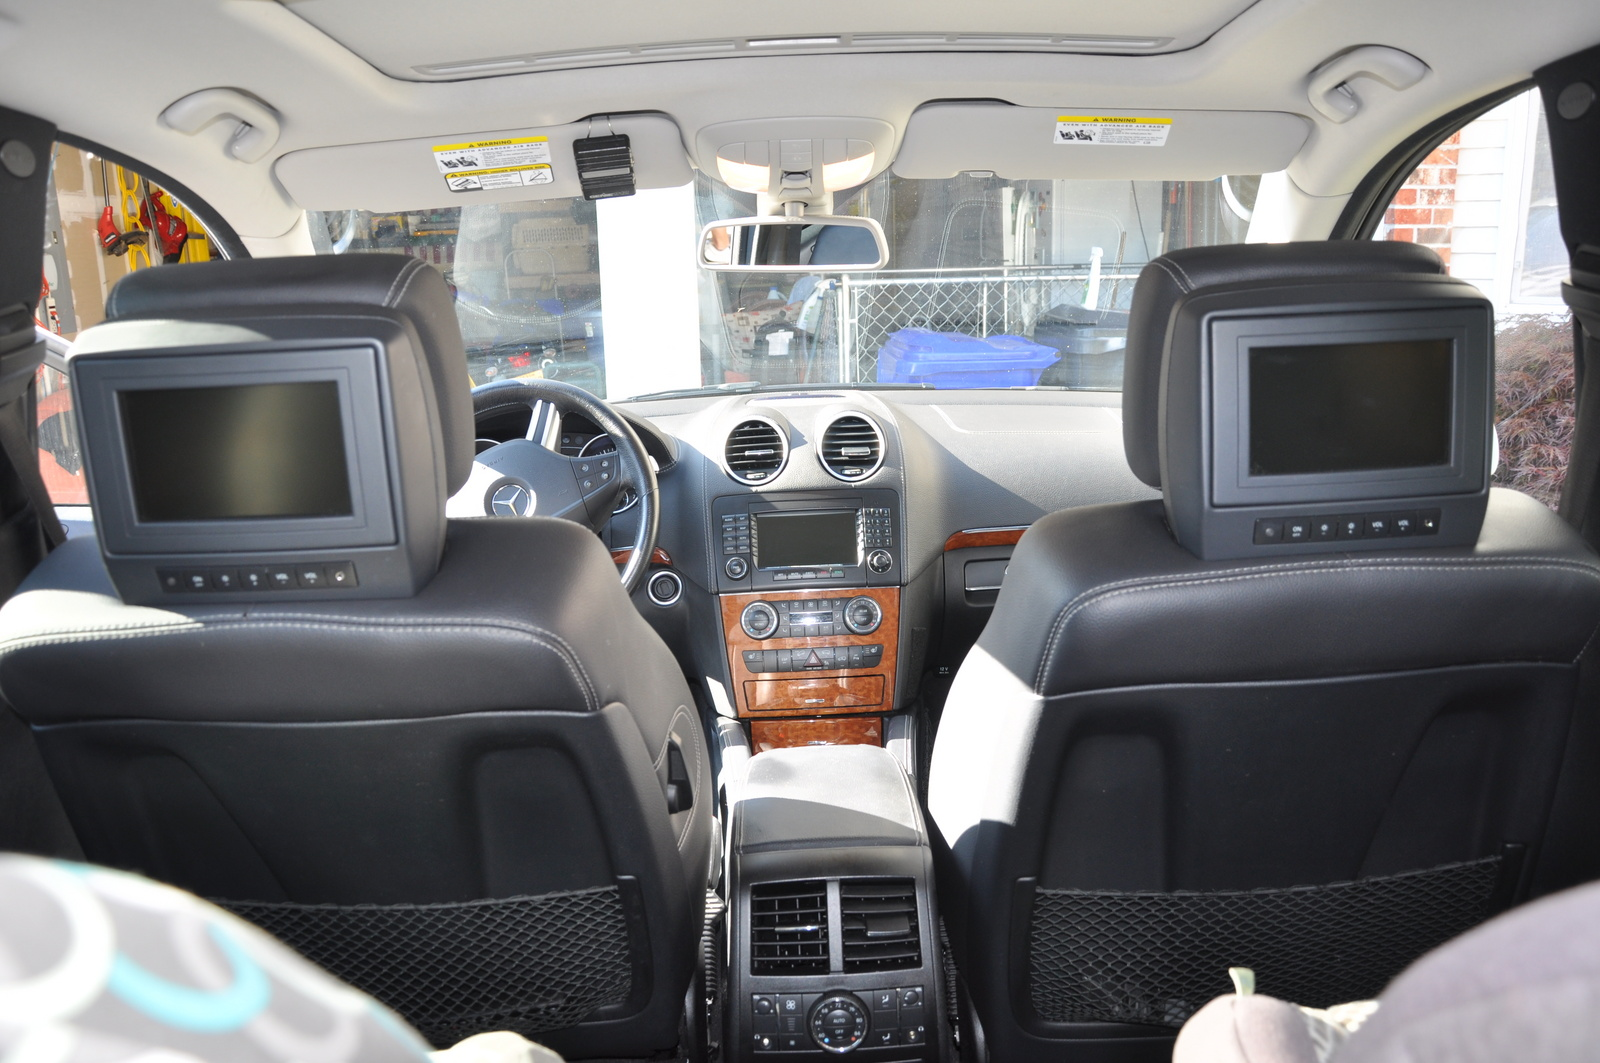 Picture of 2007 mercedes benz gl class gl450 interior for 2007 mercedes benz gl class gl450 price